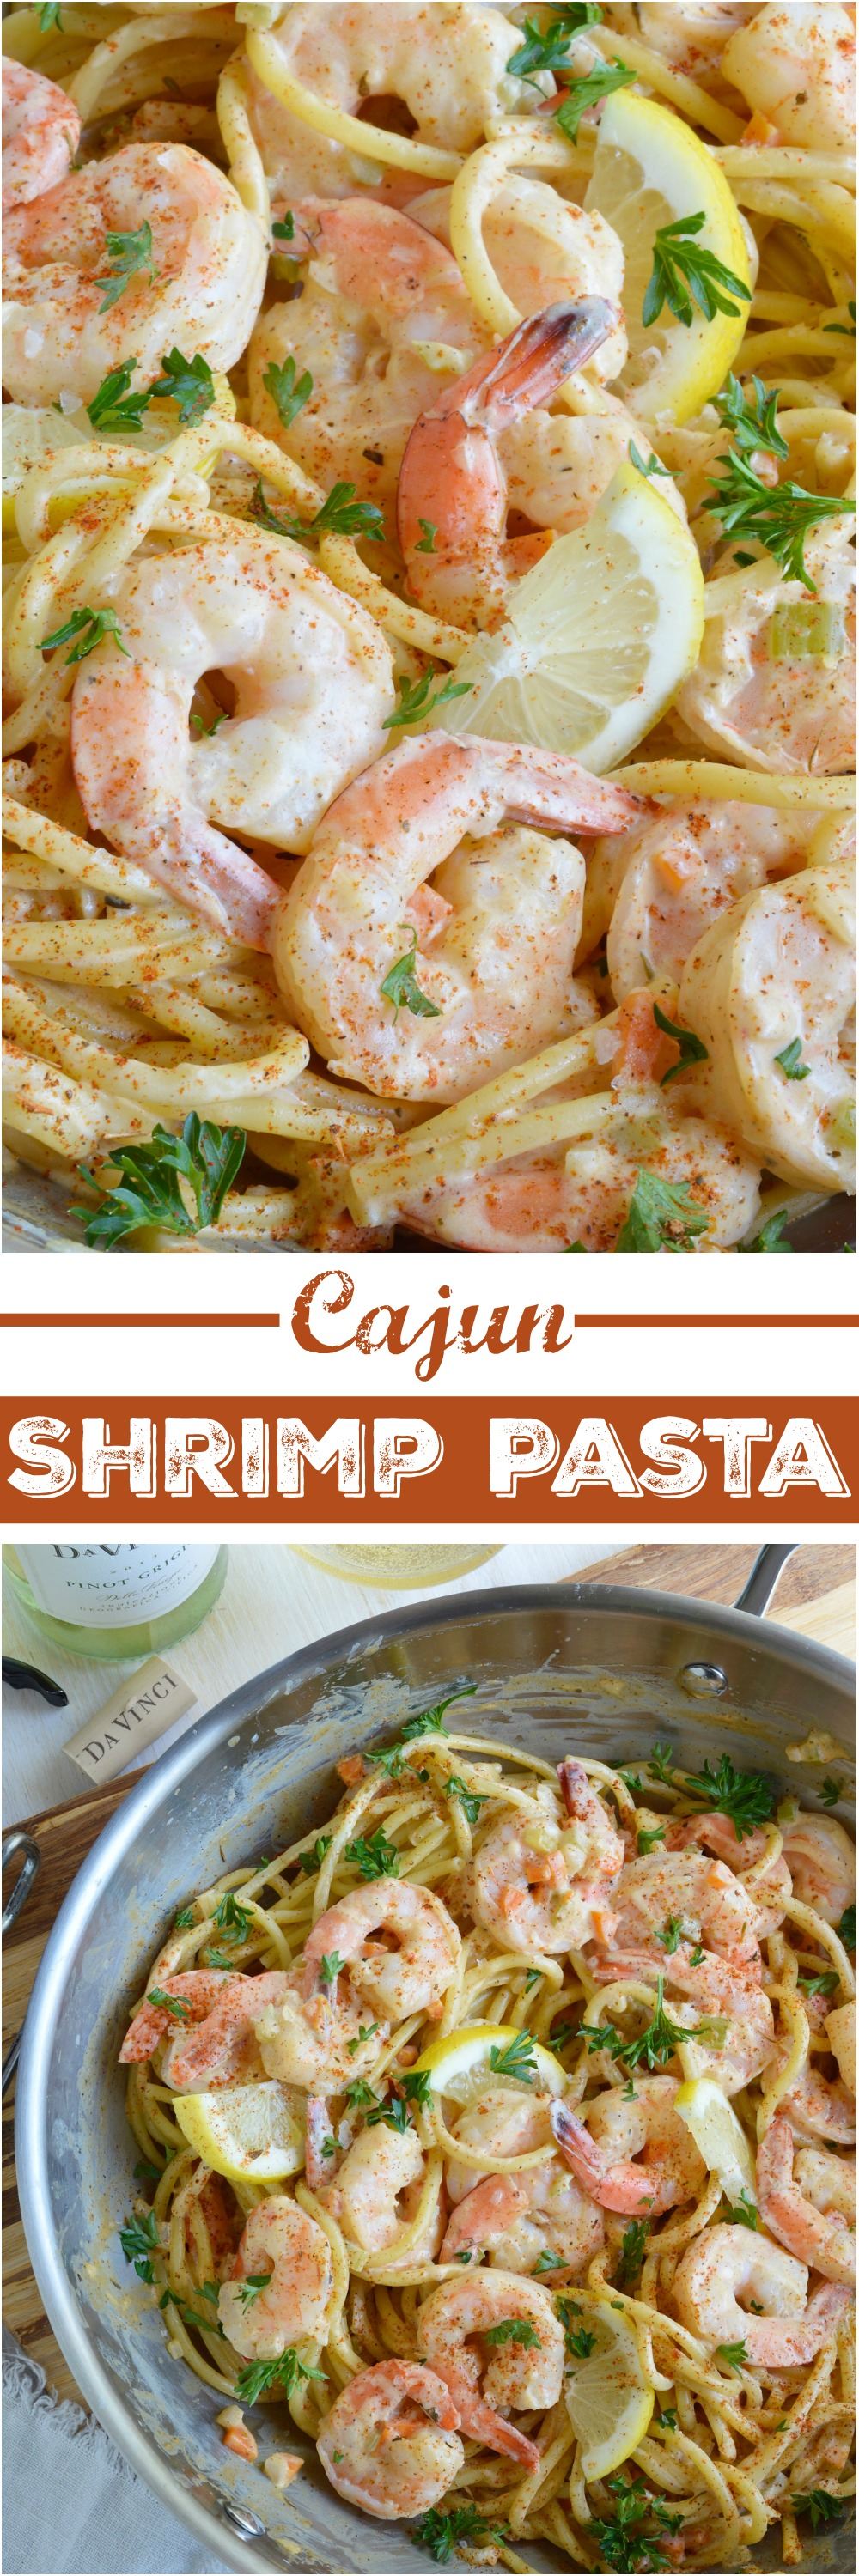 Cajun shrimp pasta wonkywonderful cajun shrimp pasta is a fancy yet simple dinner recipe shrimp and pasta slathered in forumfinder Gallery